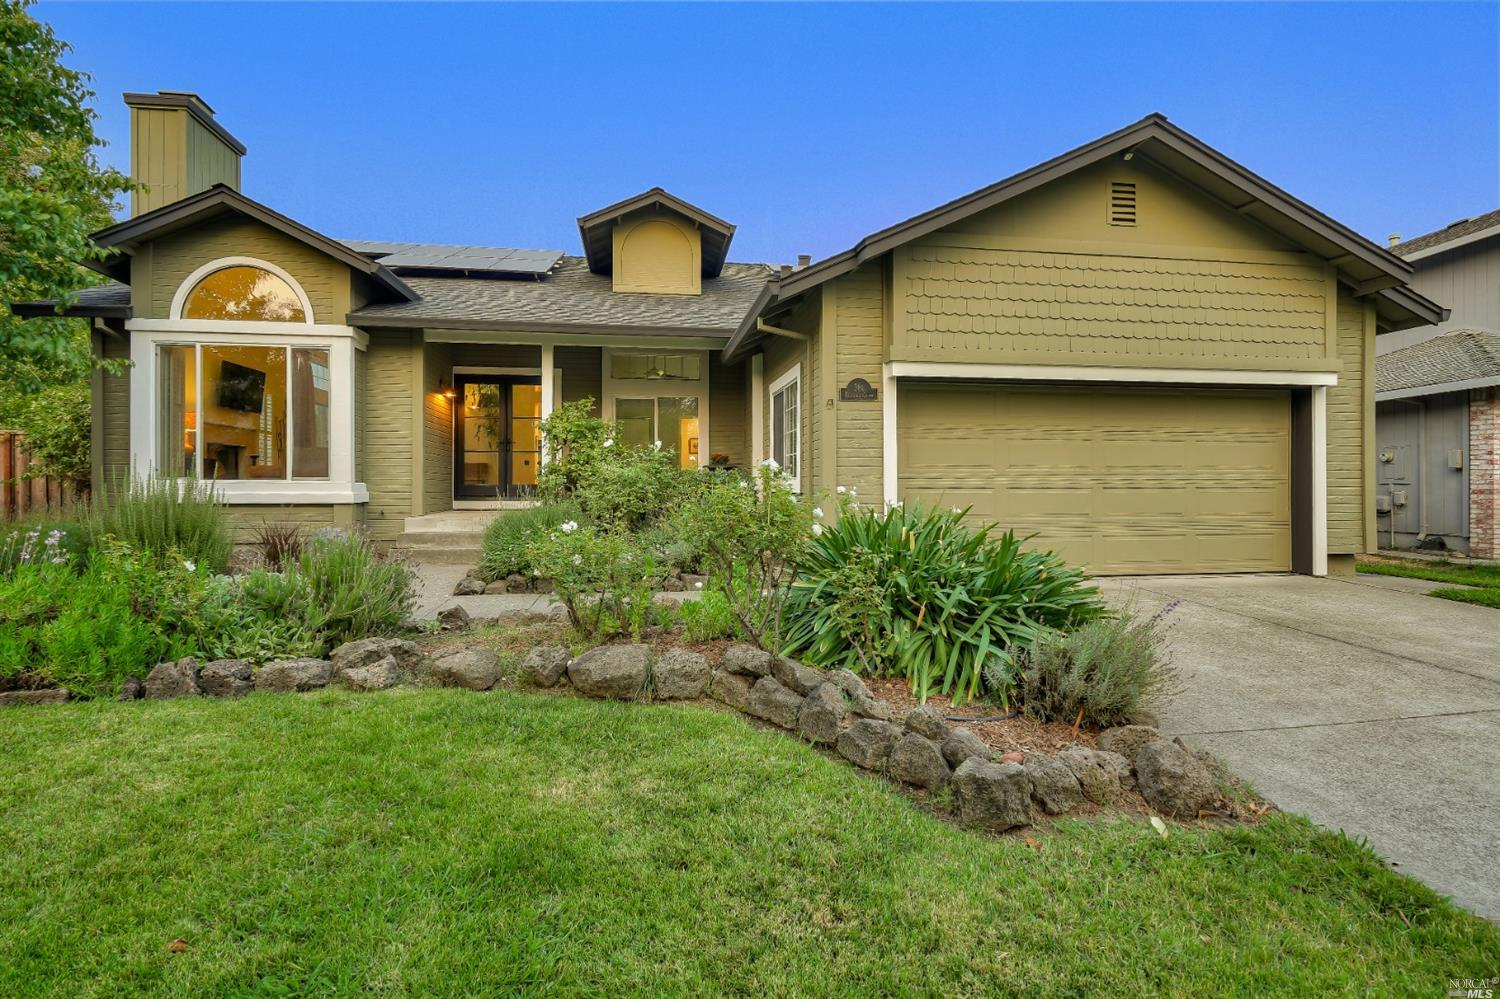 Own an acre in gated Lakewood Hills community in Windsor. Beautifully updated single story 4 bedroom